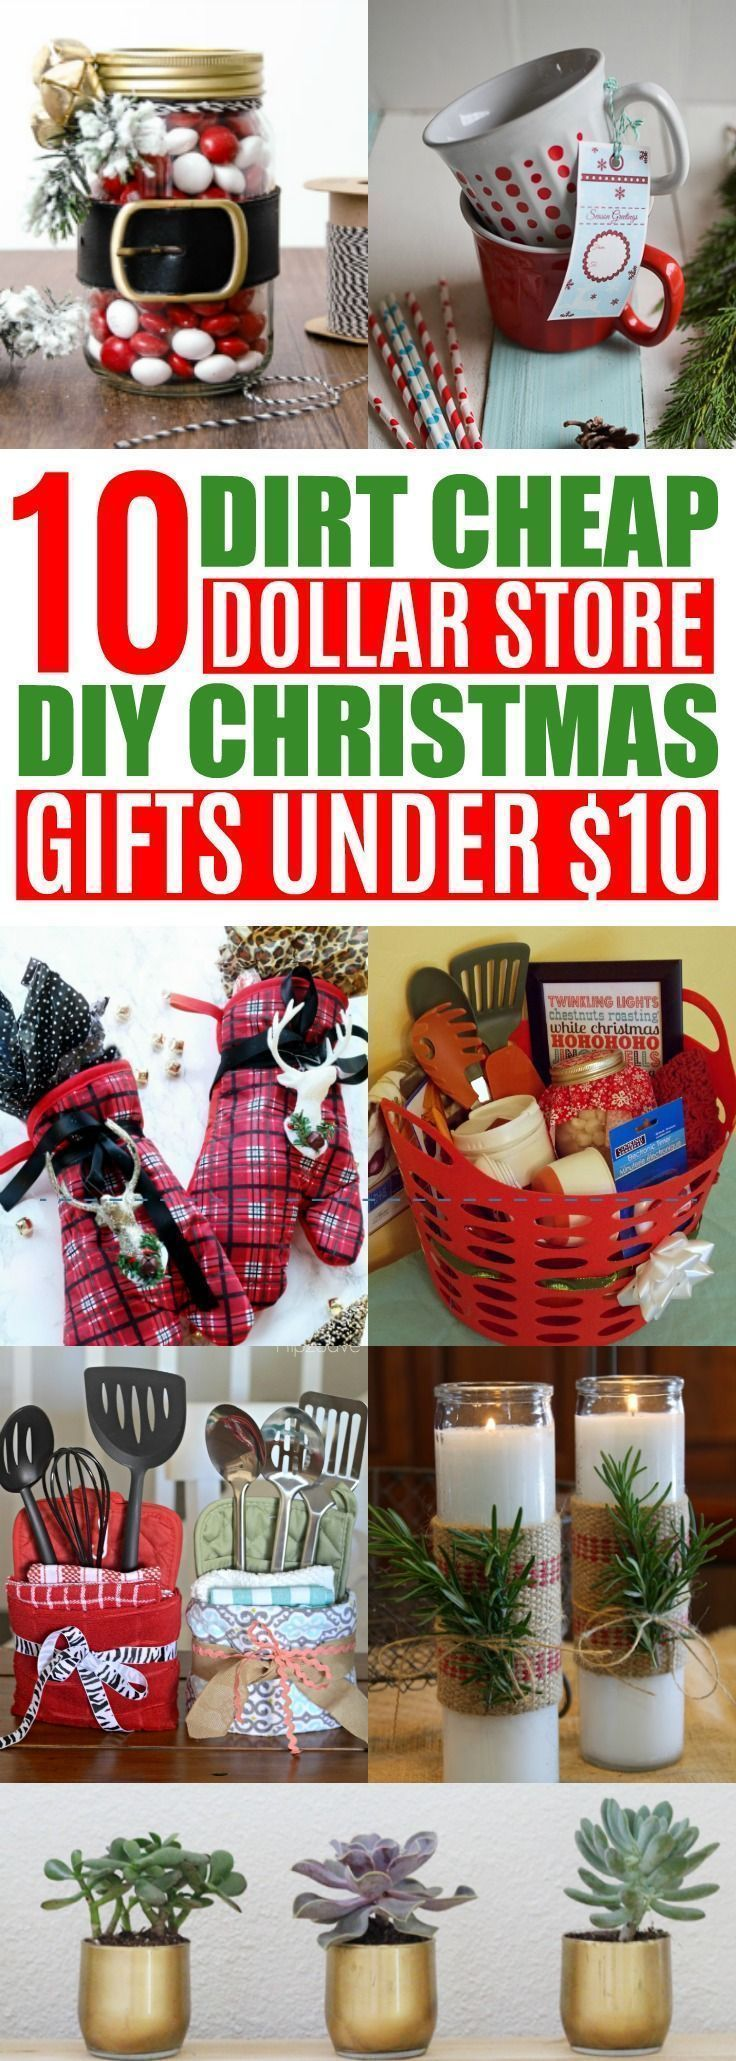 10 DIY Cheap Christmas Gift Ideas From the Dollar Store Un